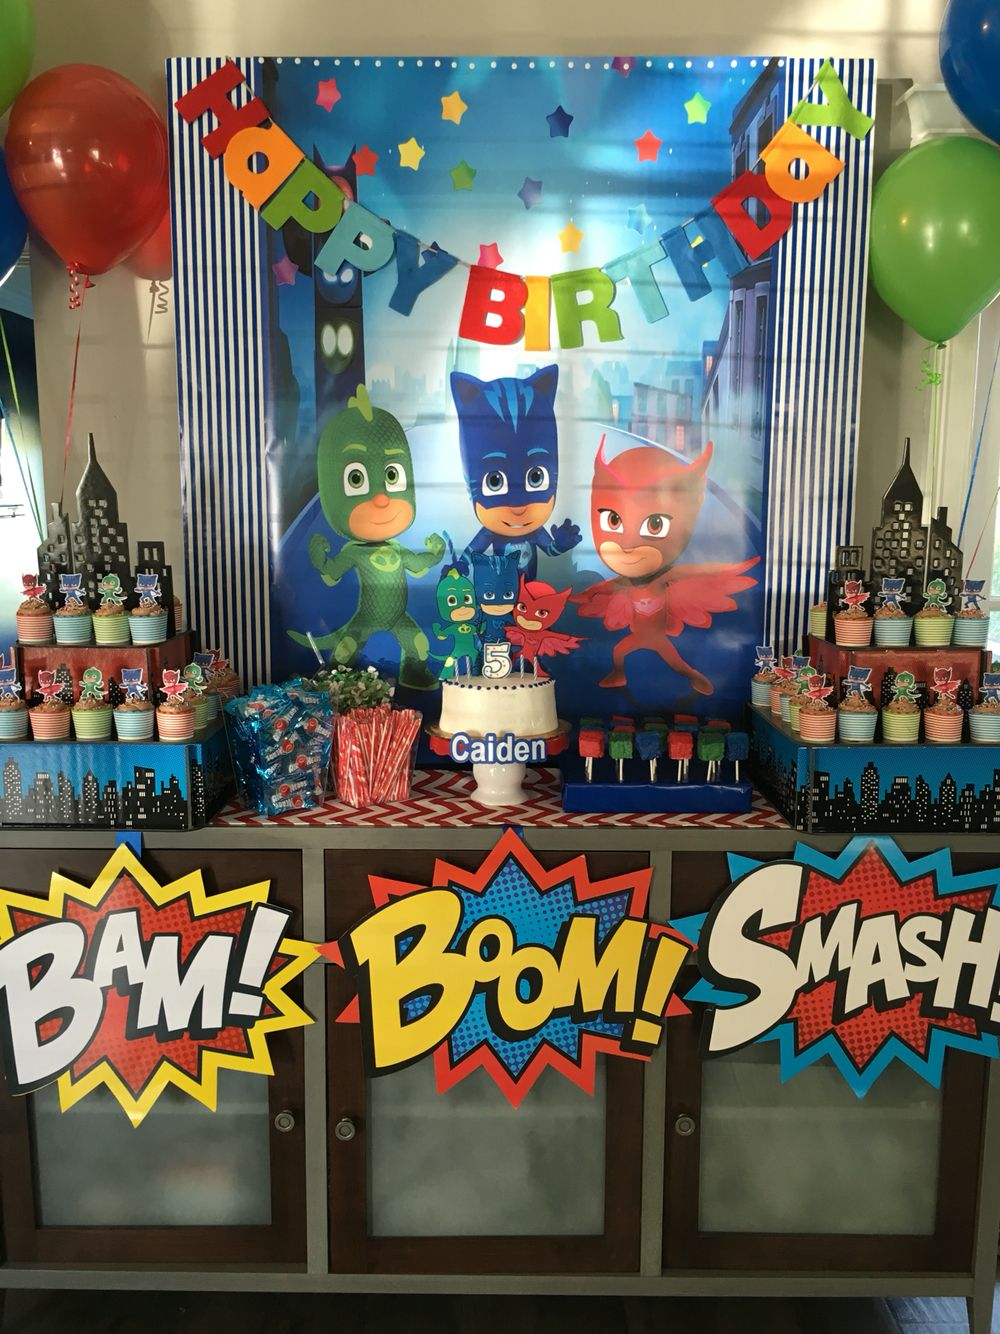 Pj Mask Party Decorations Endearing Festa A Tema Pj Masks_Buffet  Ideas  Pinterest  Pj Mask Mask Design Ideas